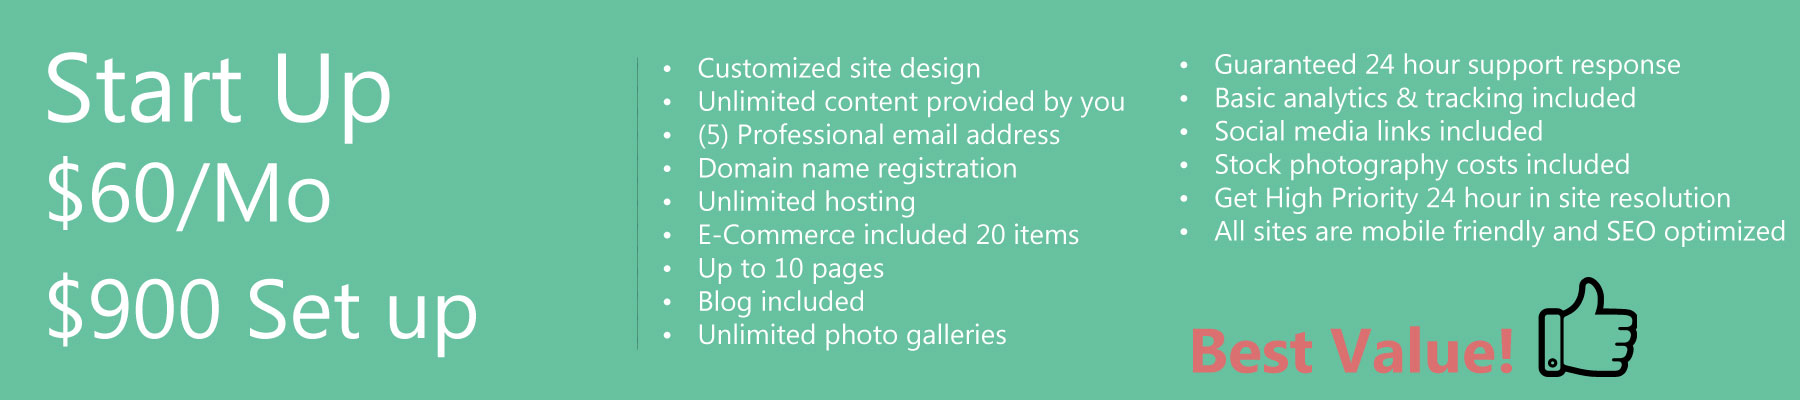 Website Design Start Up Package